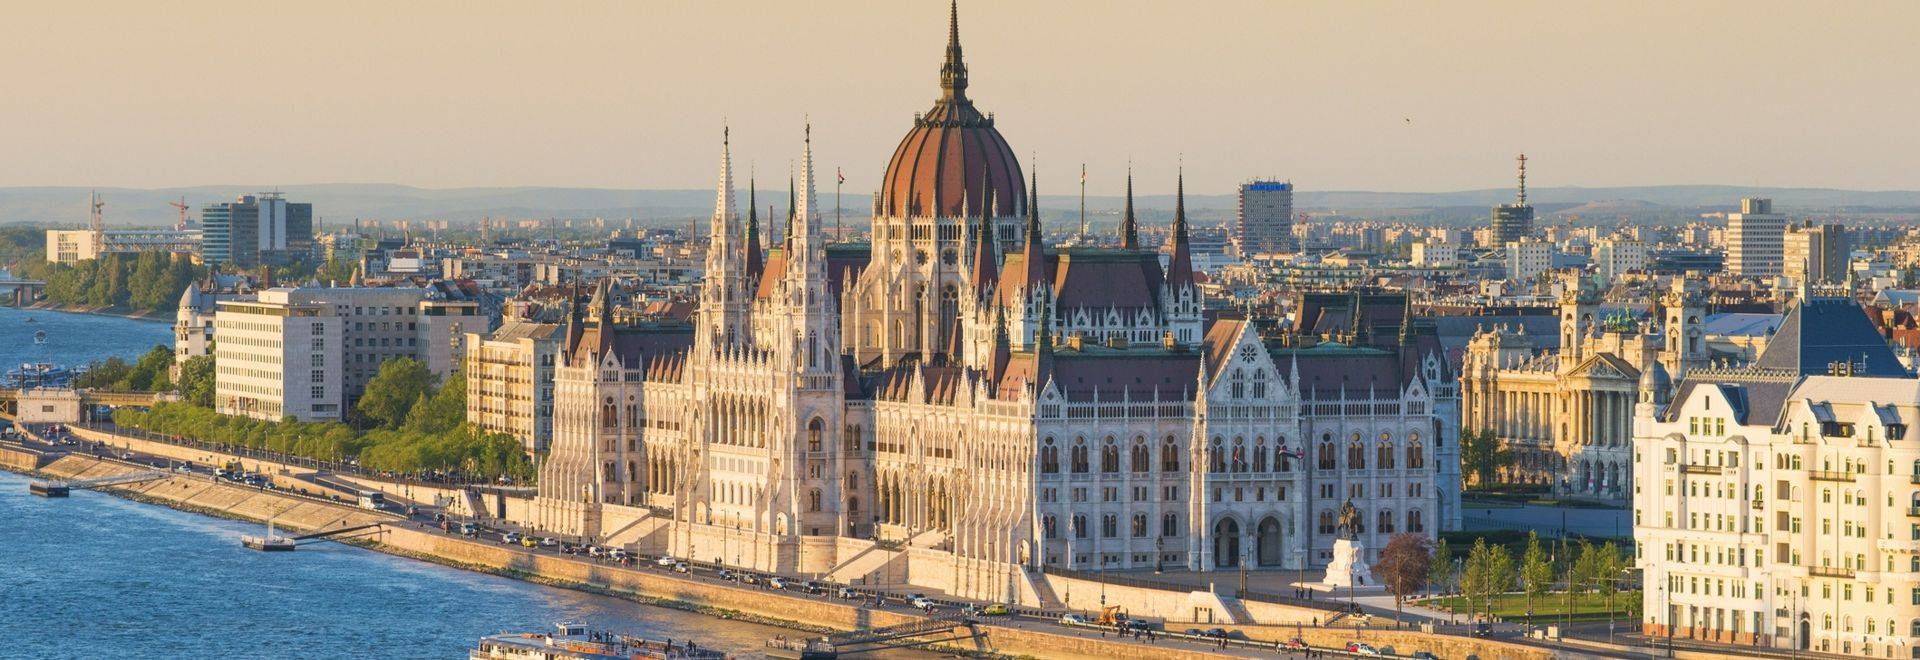 GettyImages 577098100 Budapest, Hungary